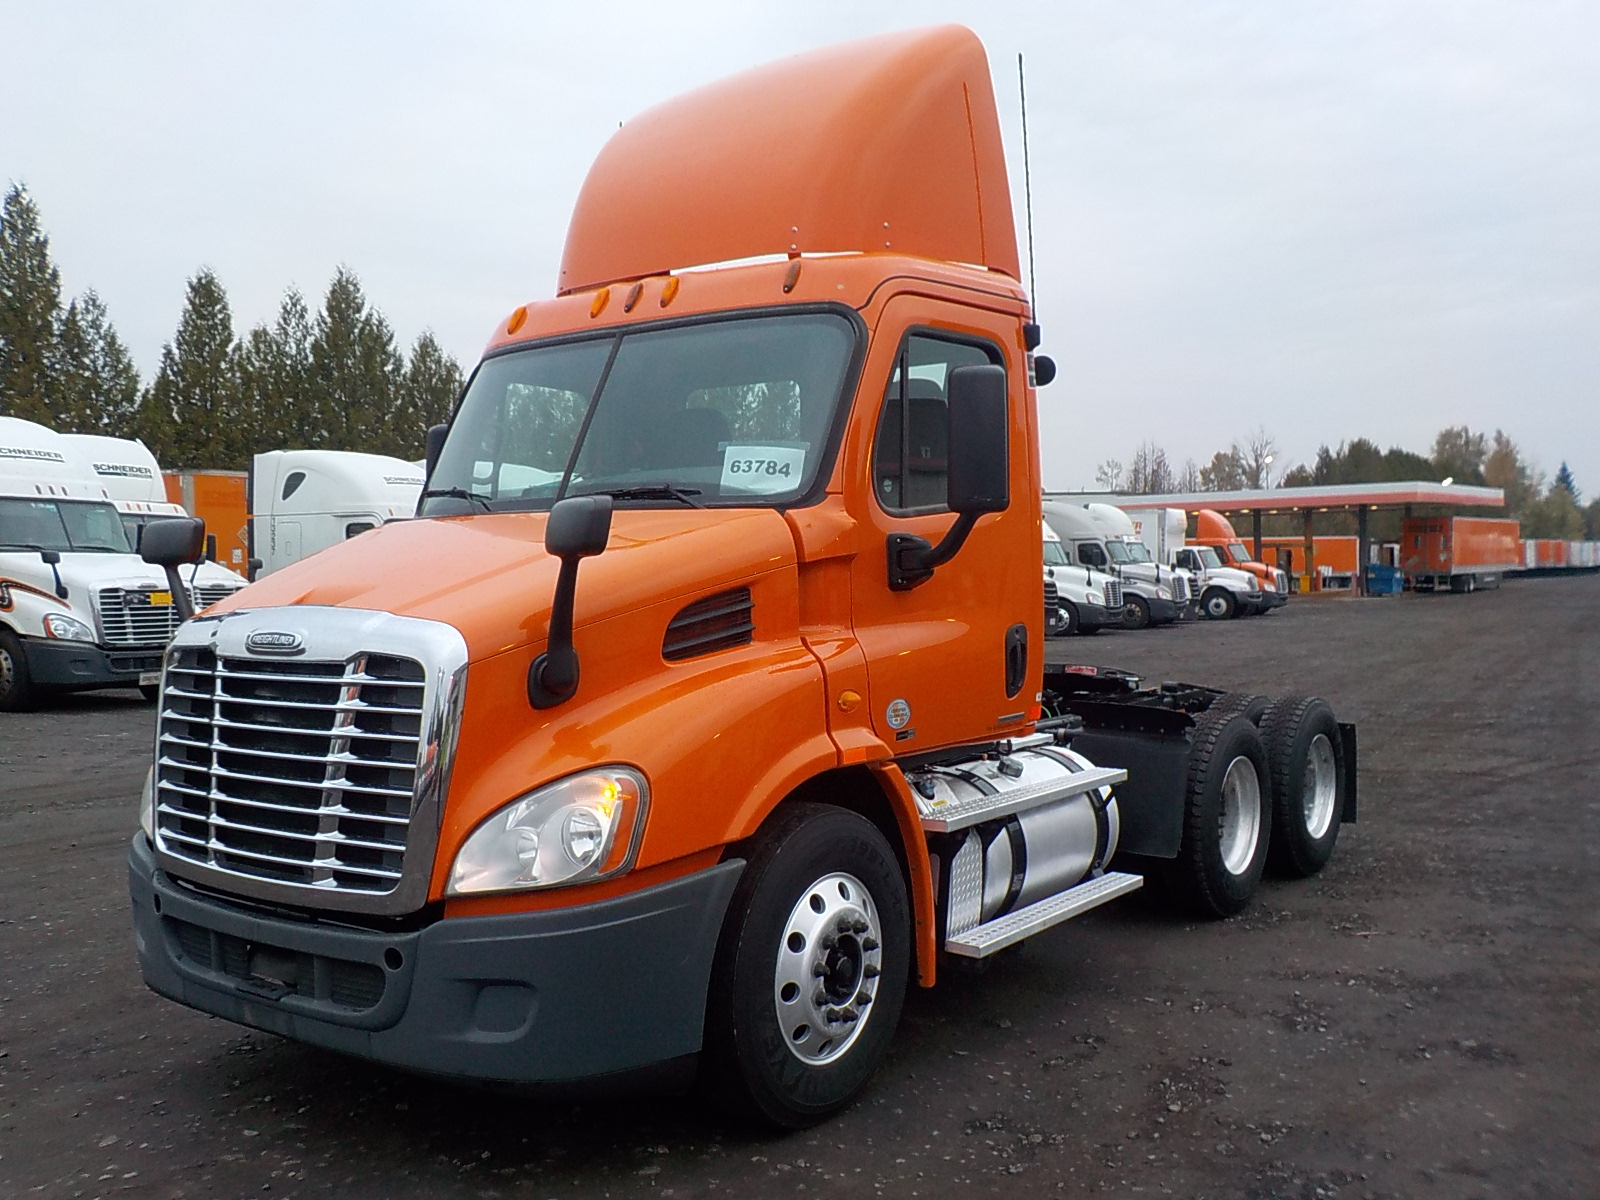 USED 2012 FREIGHTLINER CASCADIA DAYCAB TRUCK #135977